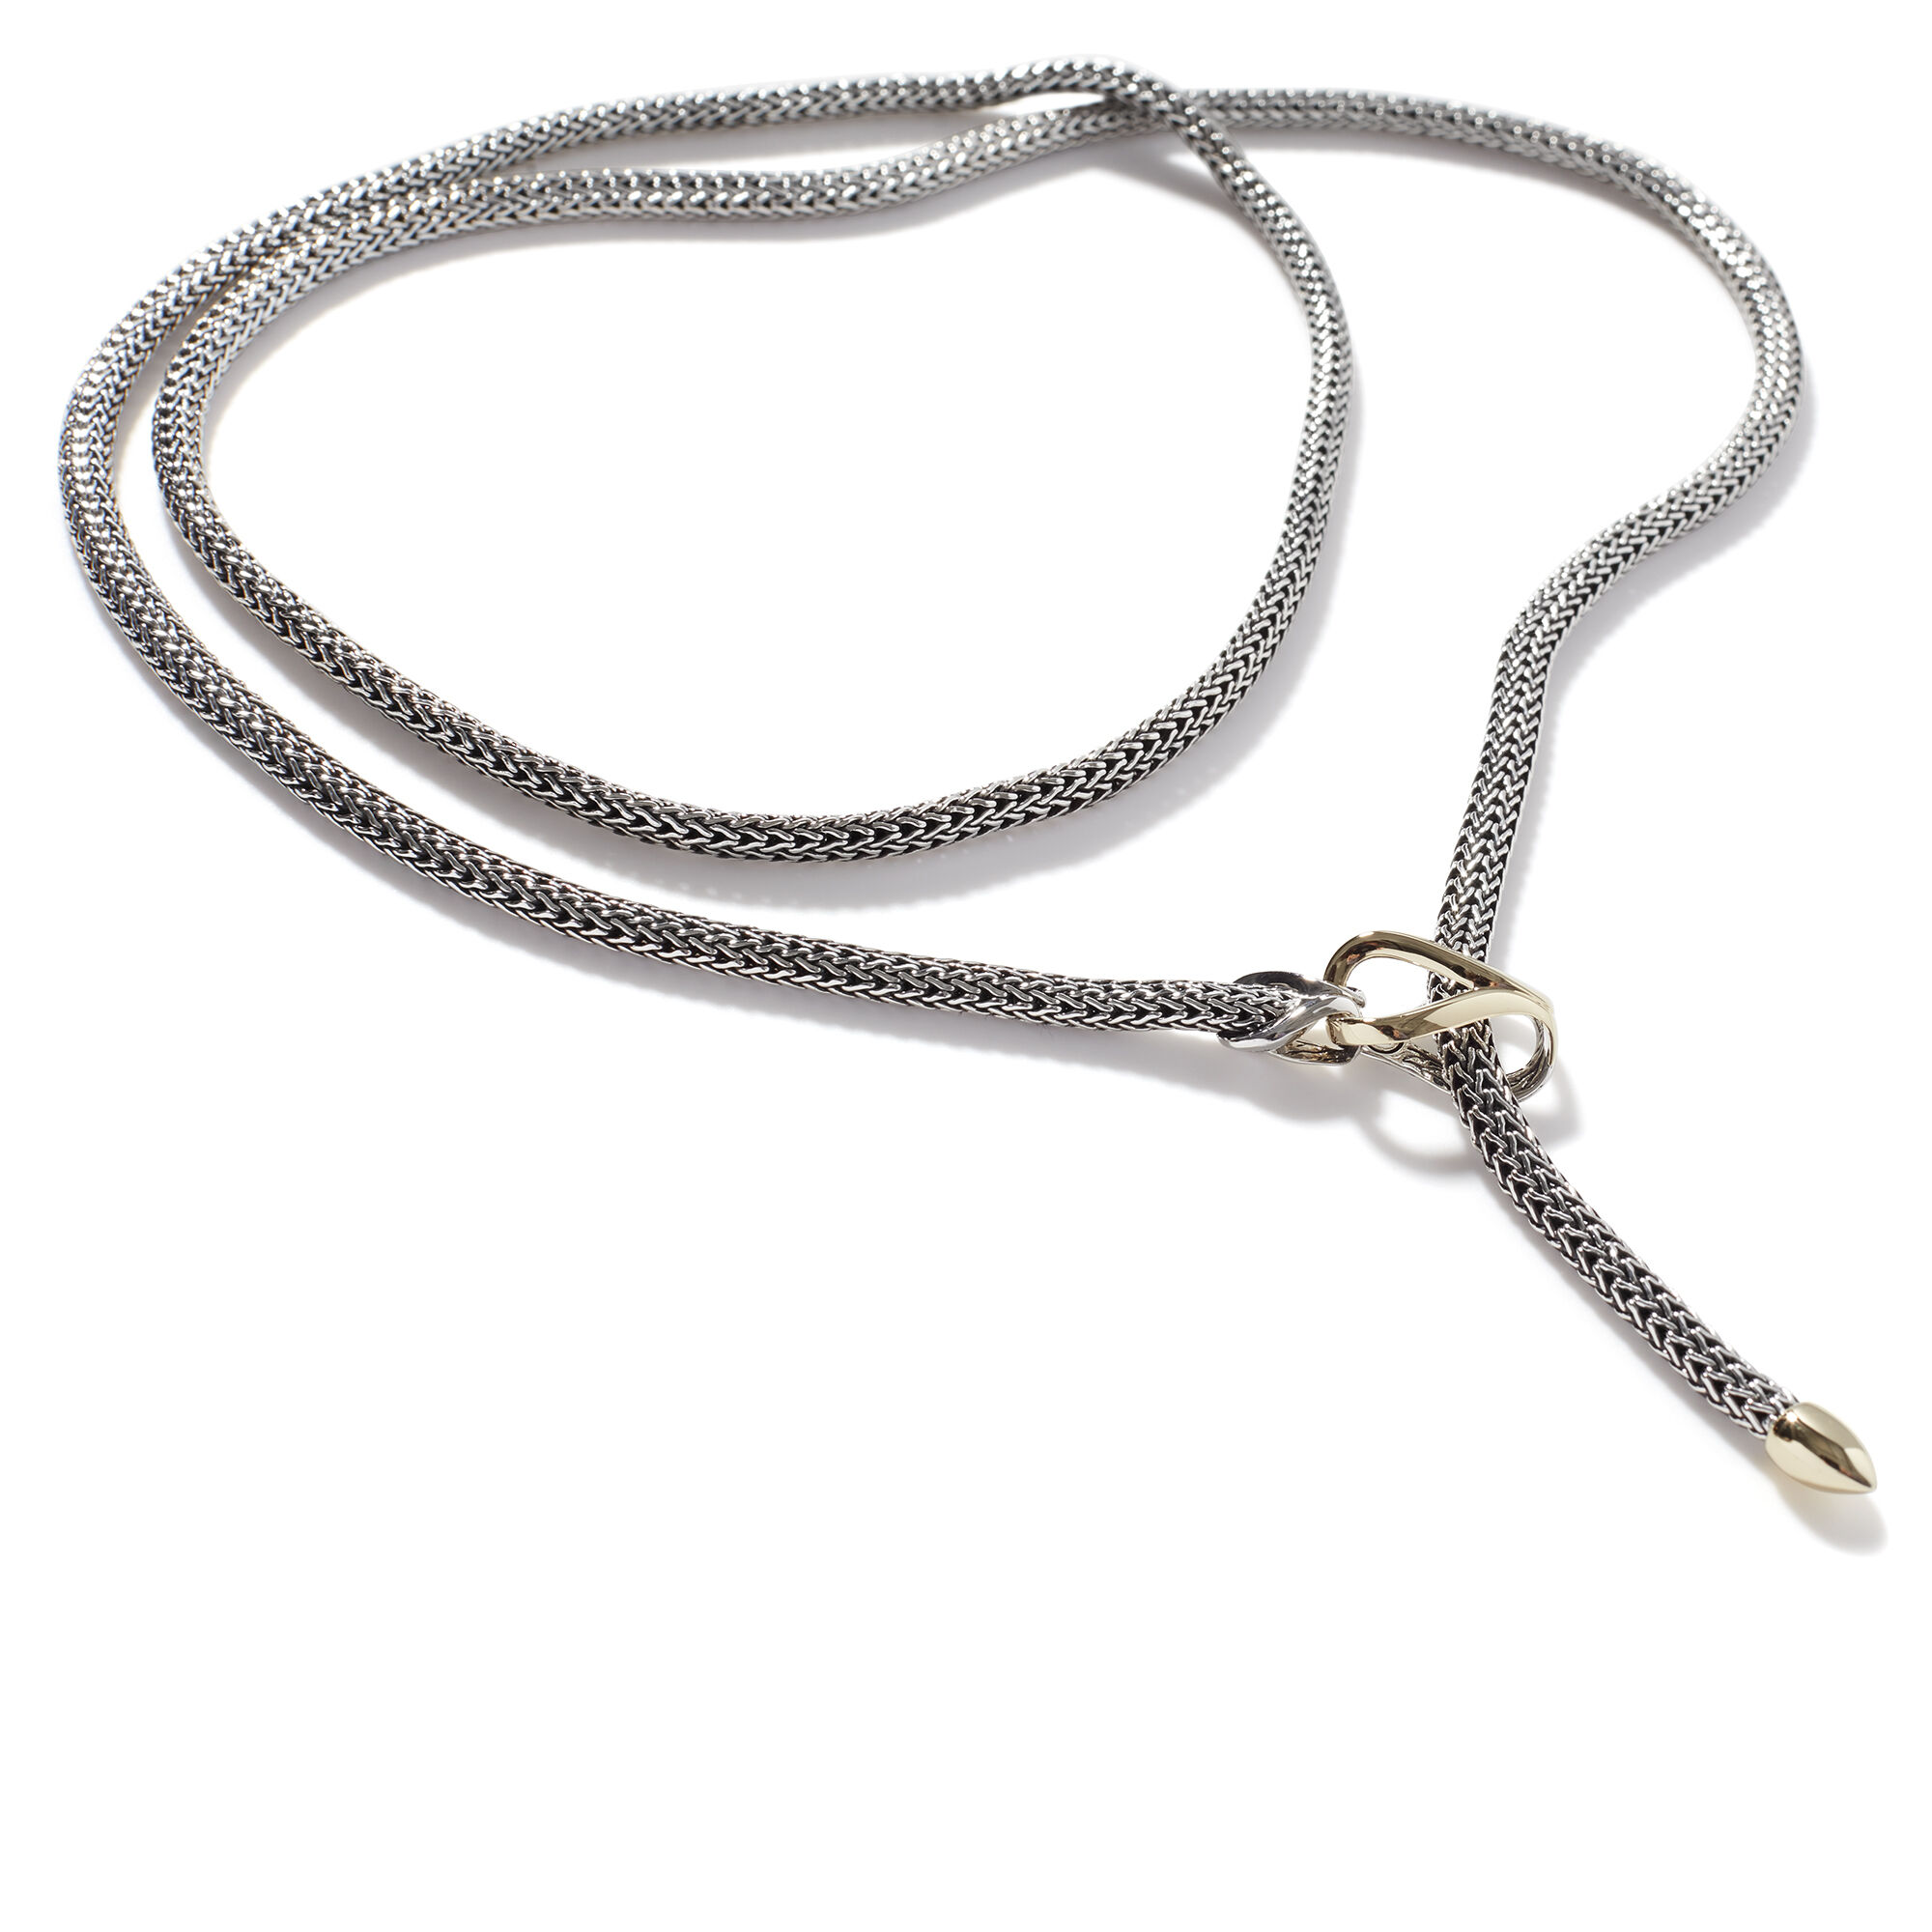 Asli Chain Link Transformable Lariat Necklace, Silver, 18K Gold, , large